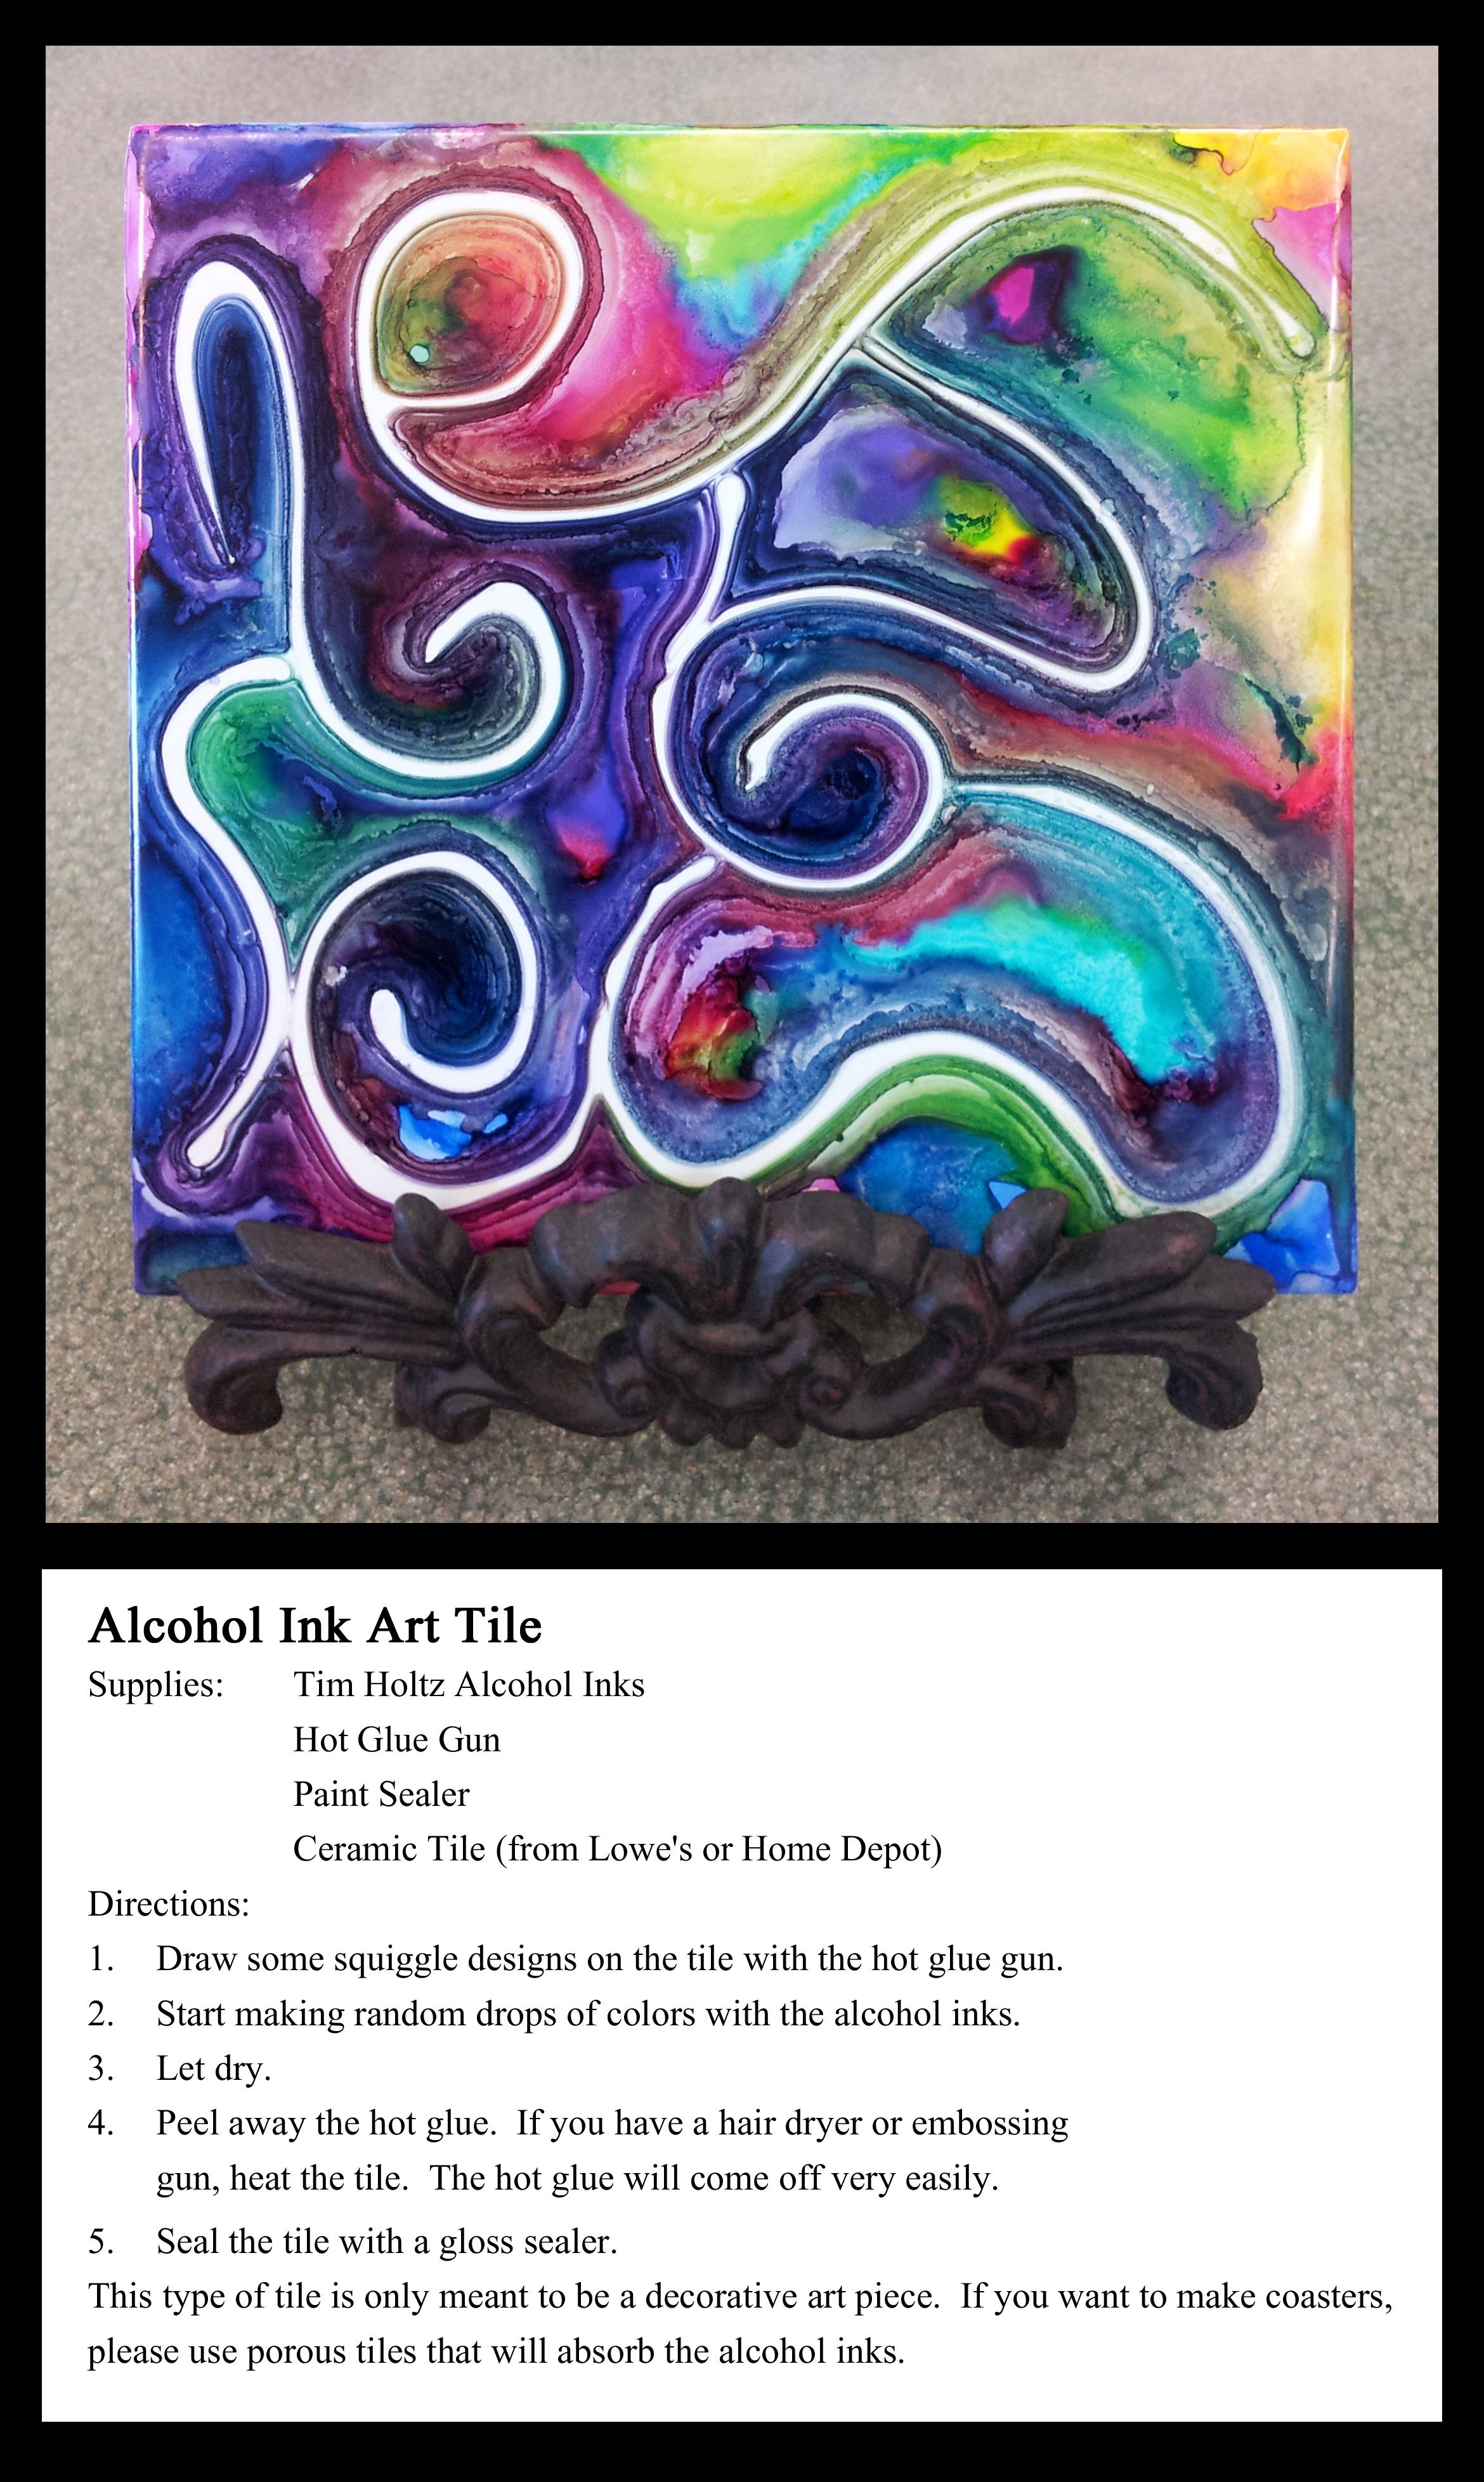 Alcohol ink art tile make a design on the tile using the hot glue alcohol ink art tile make a design on the tile using the hot glue gun dailygadgetfo Image collections